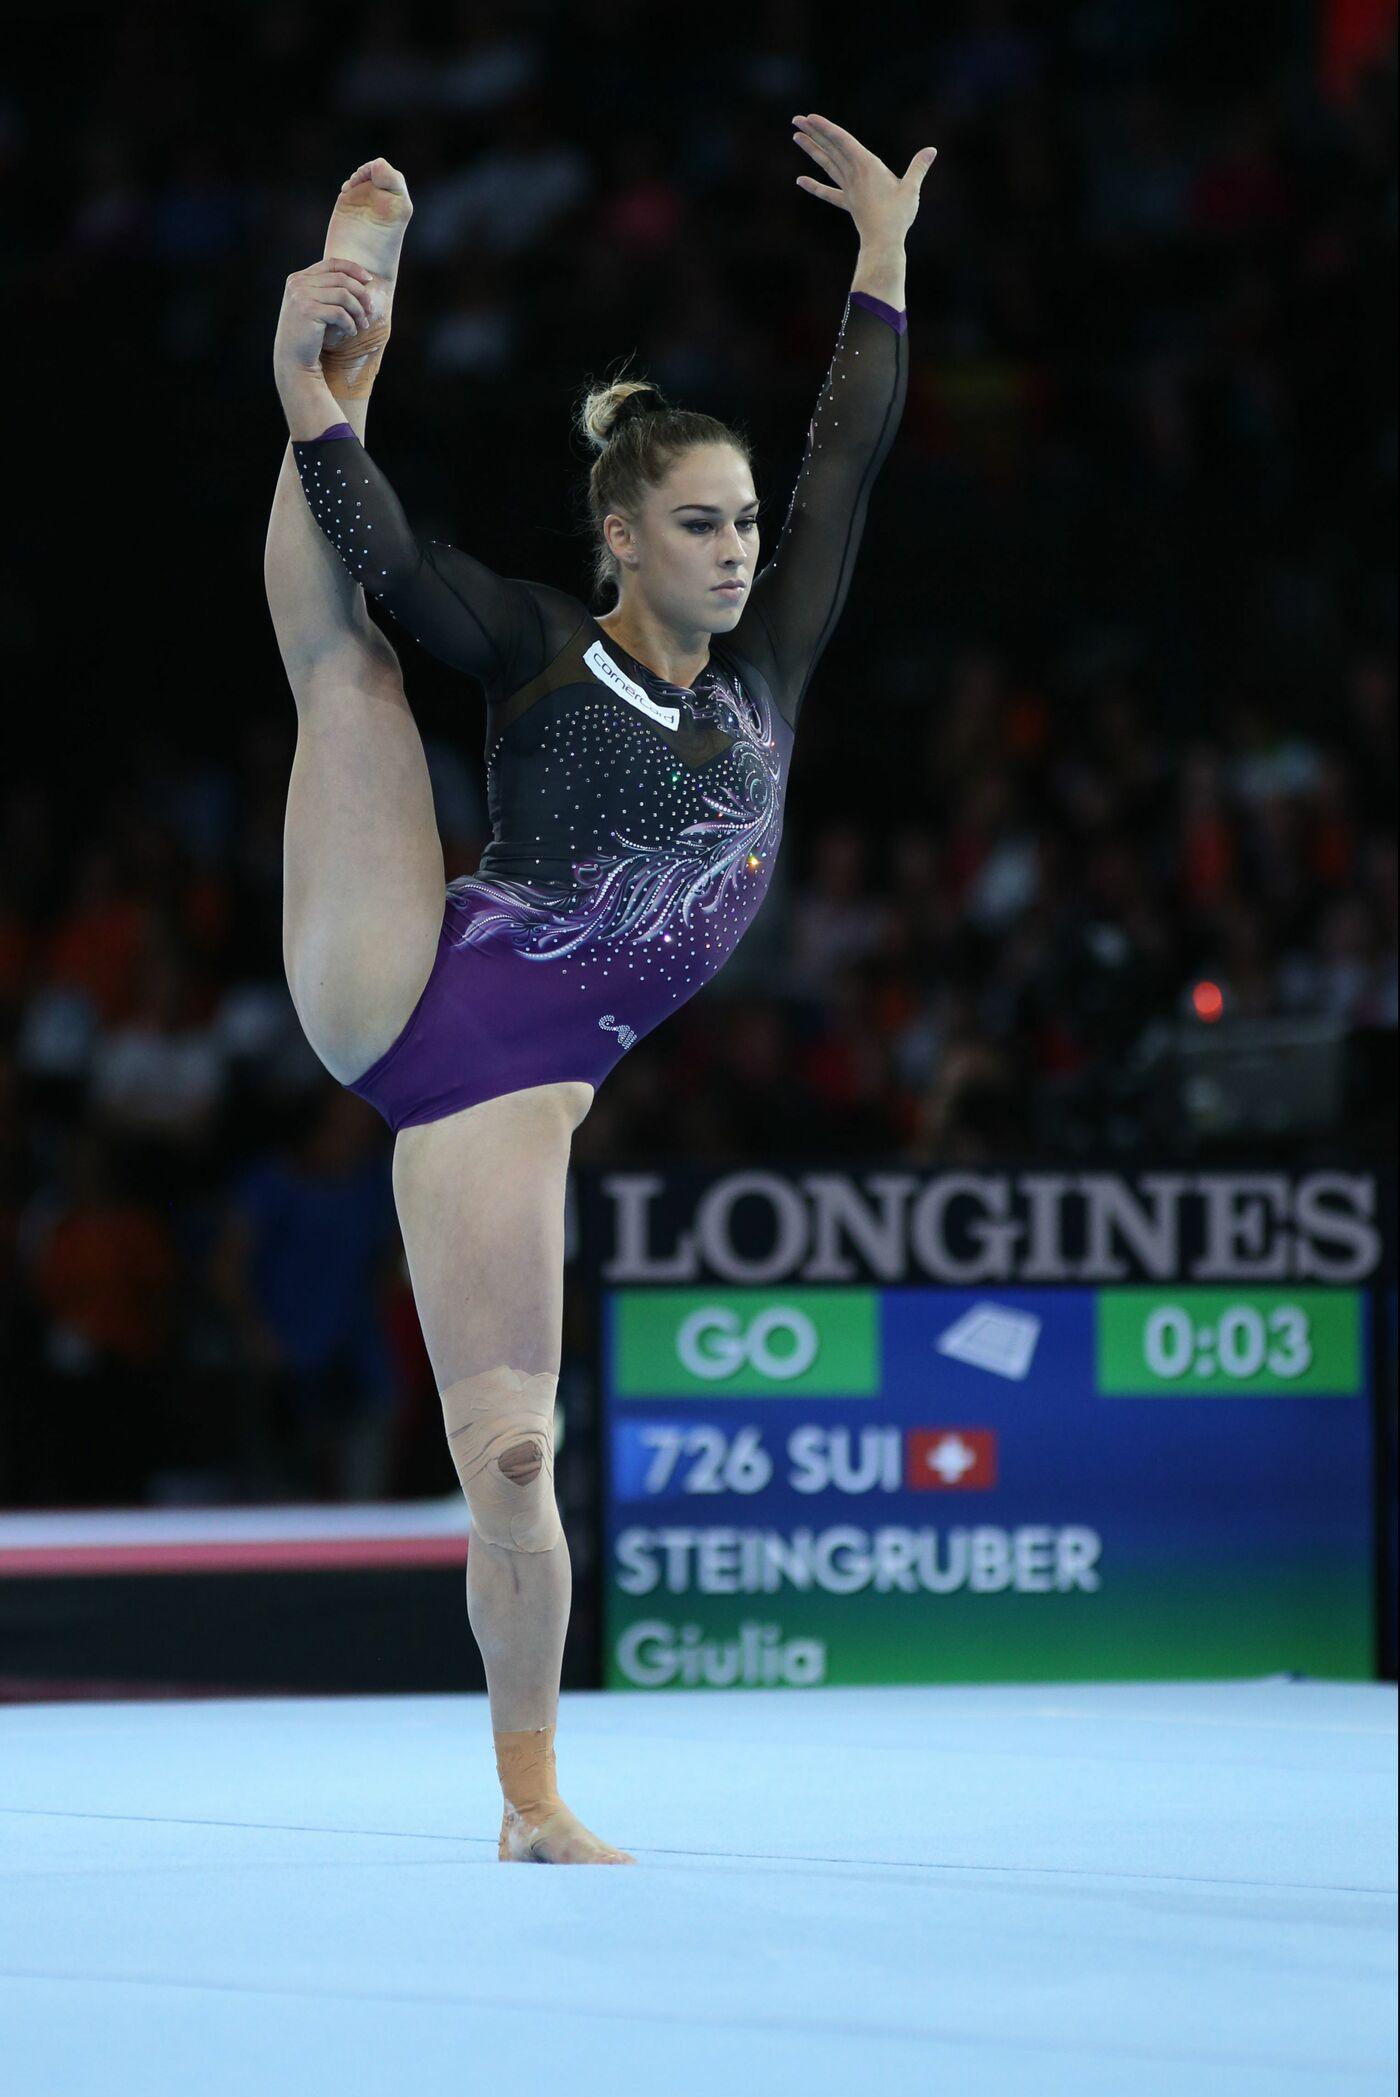 Longines Gymnastics Event: France's Melanie de Jesus dos Santos and USA's Samuel Mikulak were honored with the Longines Prize for Elegance at the 49th Artistic Gymnastics World Championships in Stuttgart 2